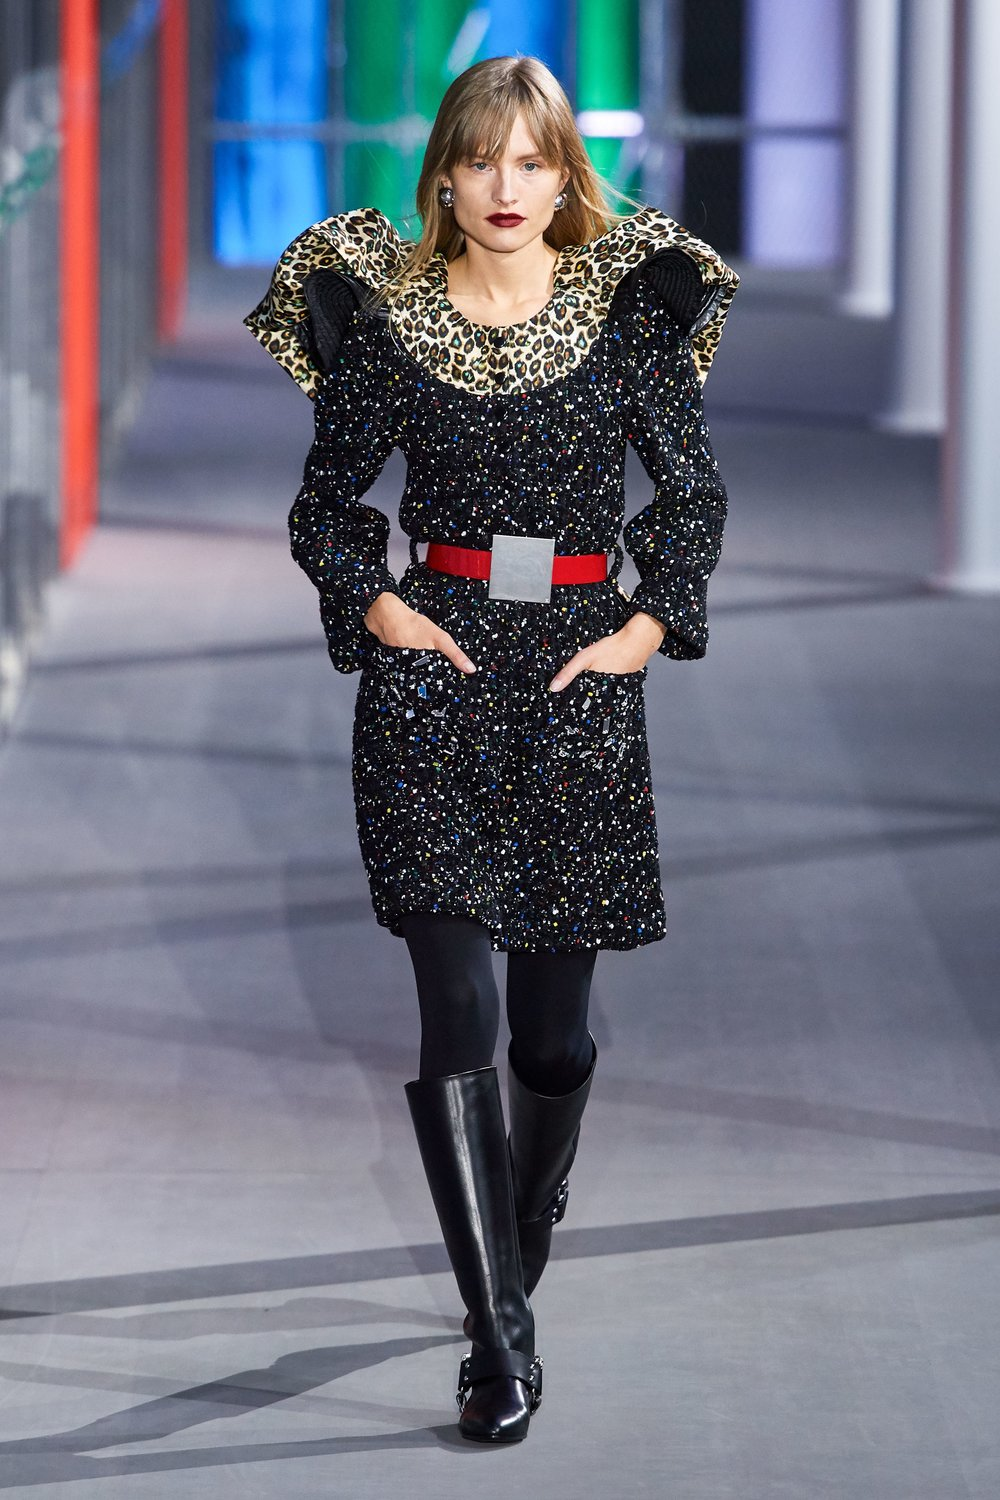 Shoulders - Emphasis on the shoulders in dresses and coats - Louis Vuitton